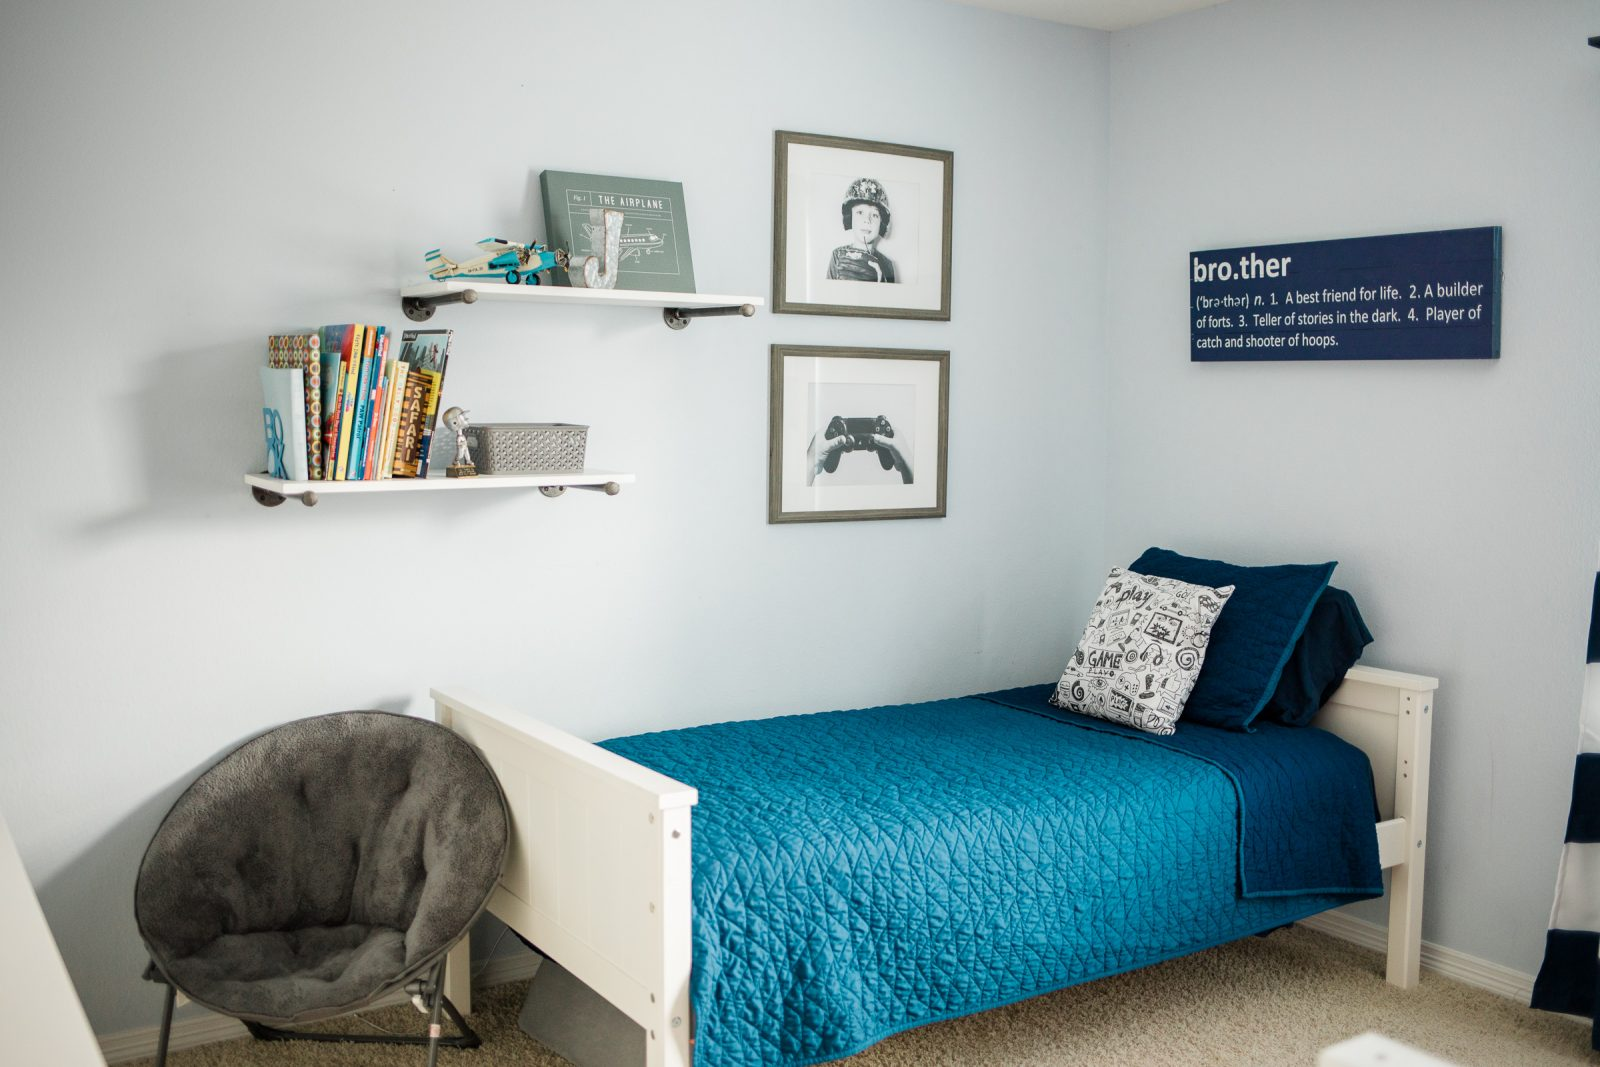 Houston lifestyle blogger Elly Brown shares her boys bedding from Target